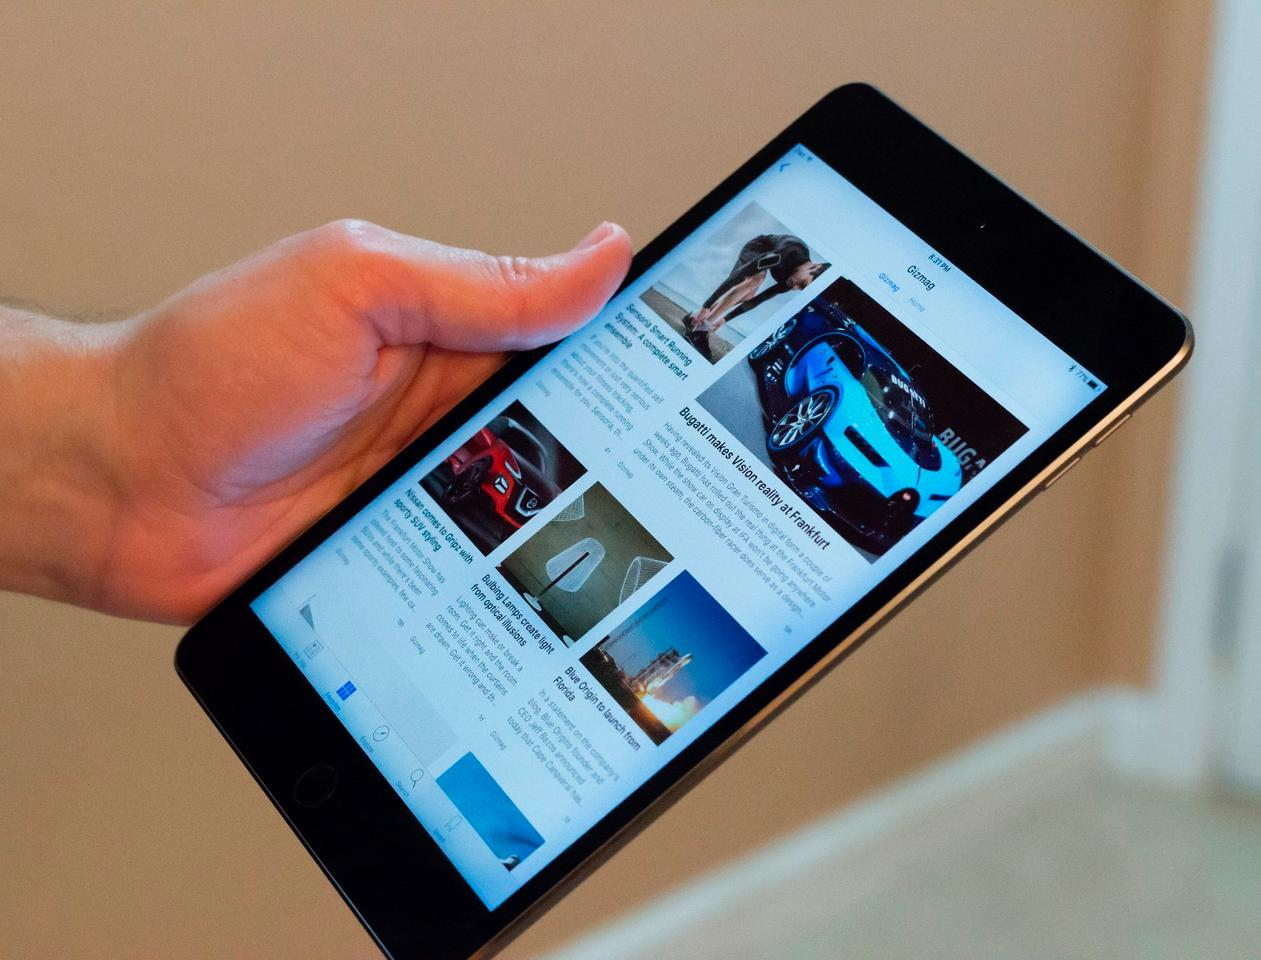 The 6.1 mm (0.24-in) thick iPad mini 4